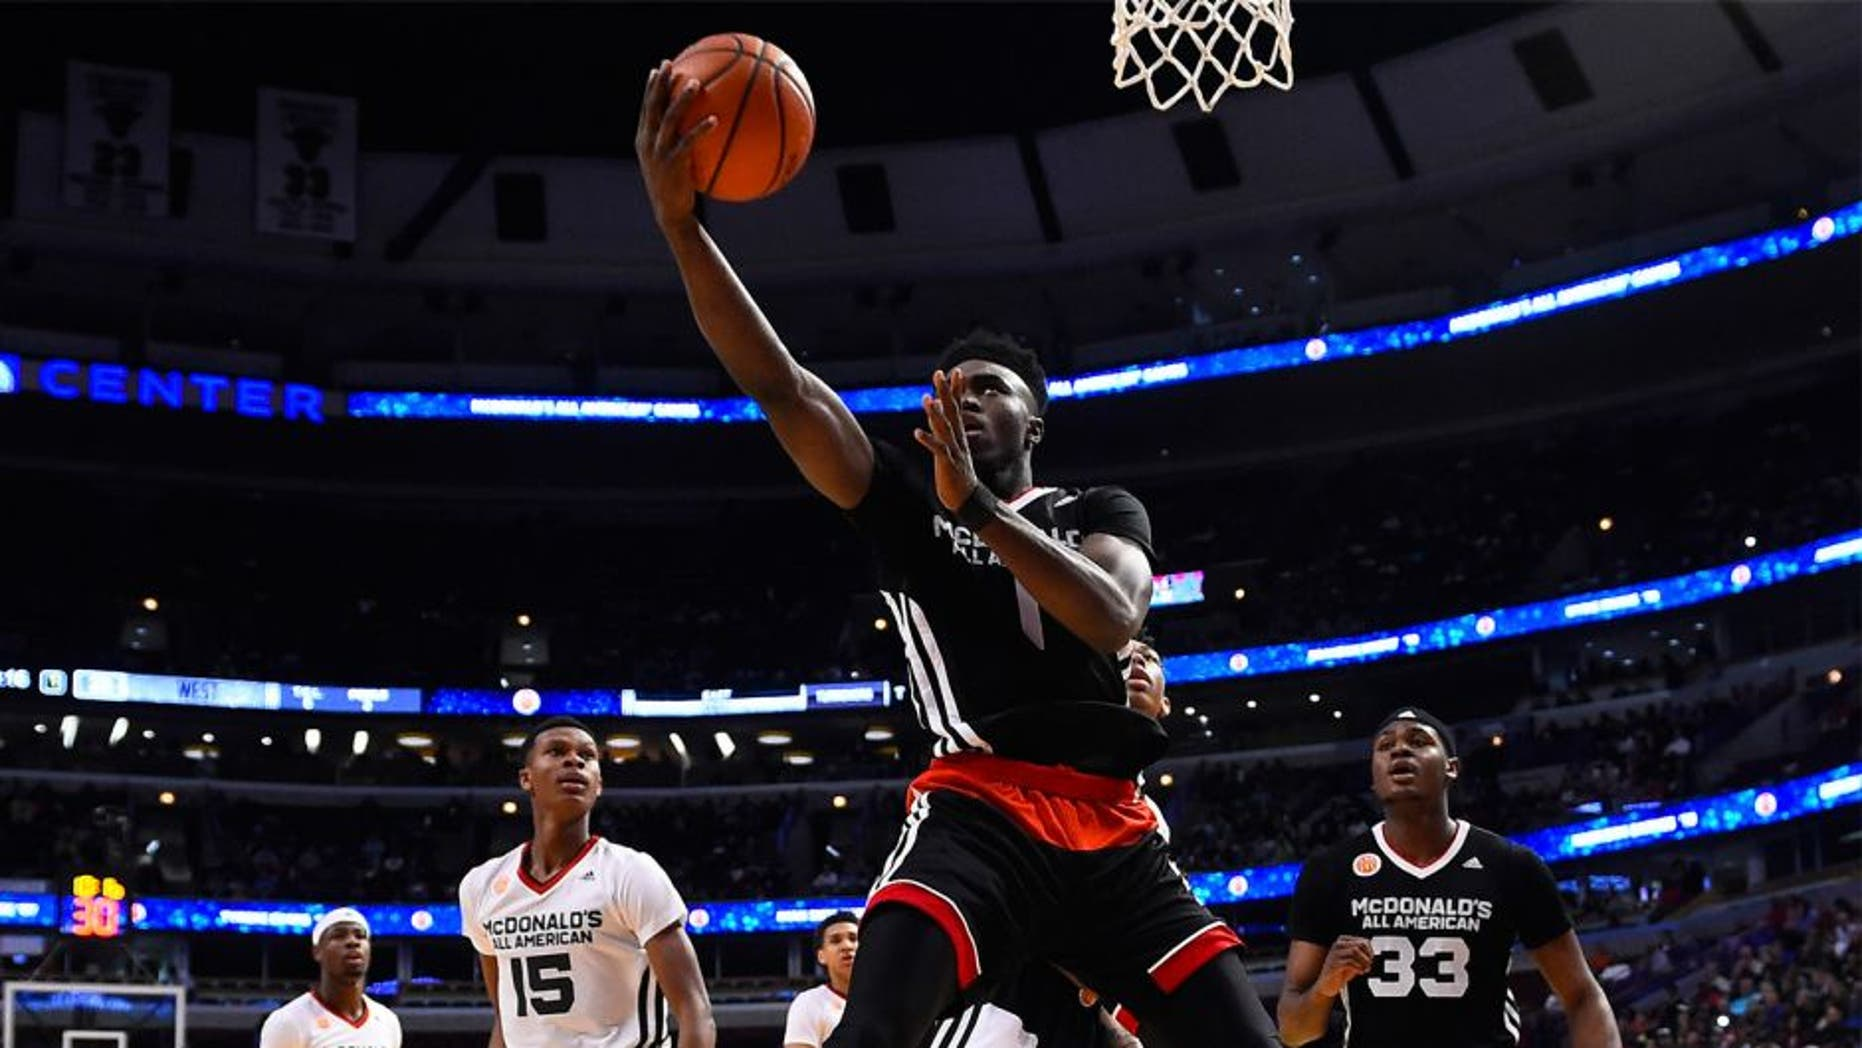 Apr 1, 2015; Chicago, IL, USA; McDonald's All American East forward Jaylen Brown (1) shoots the ball against the McDonald's All American West during the first half at the United Center. Mandatory Credit: Mike DiNovo-USA TODAY Sports